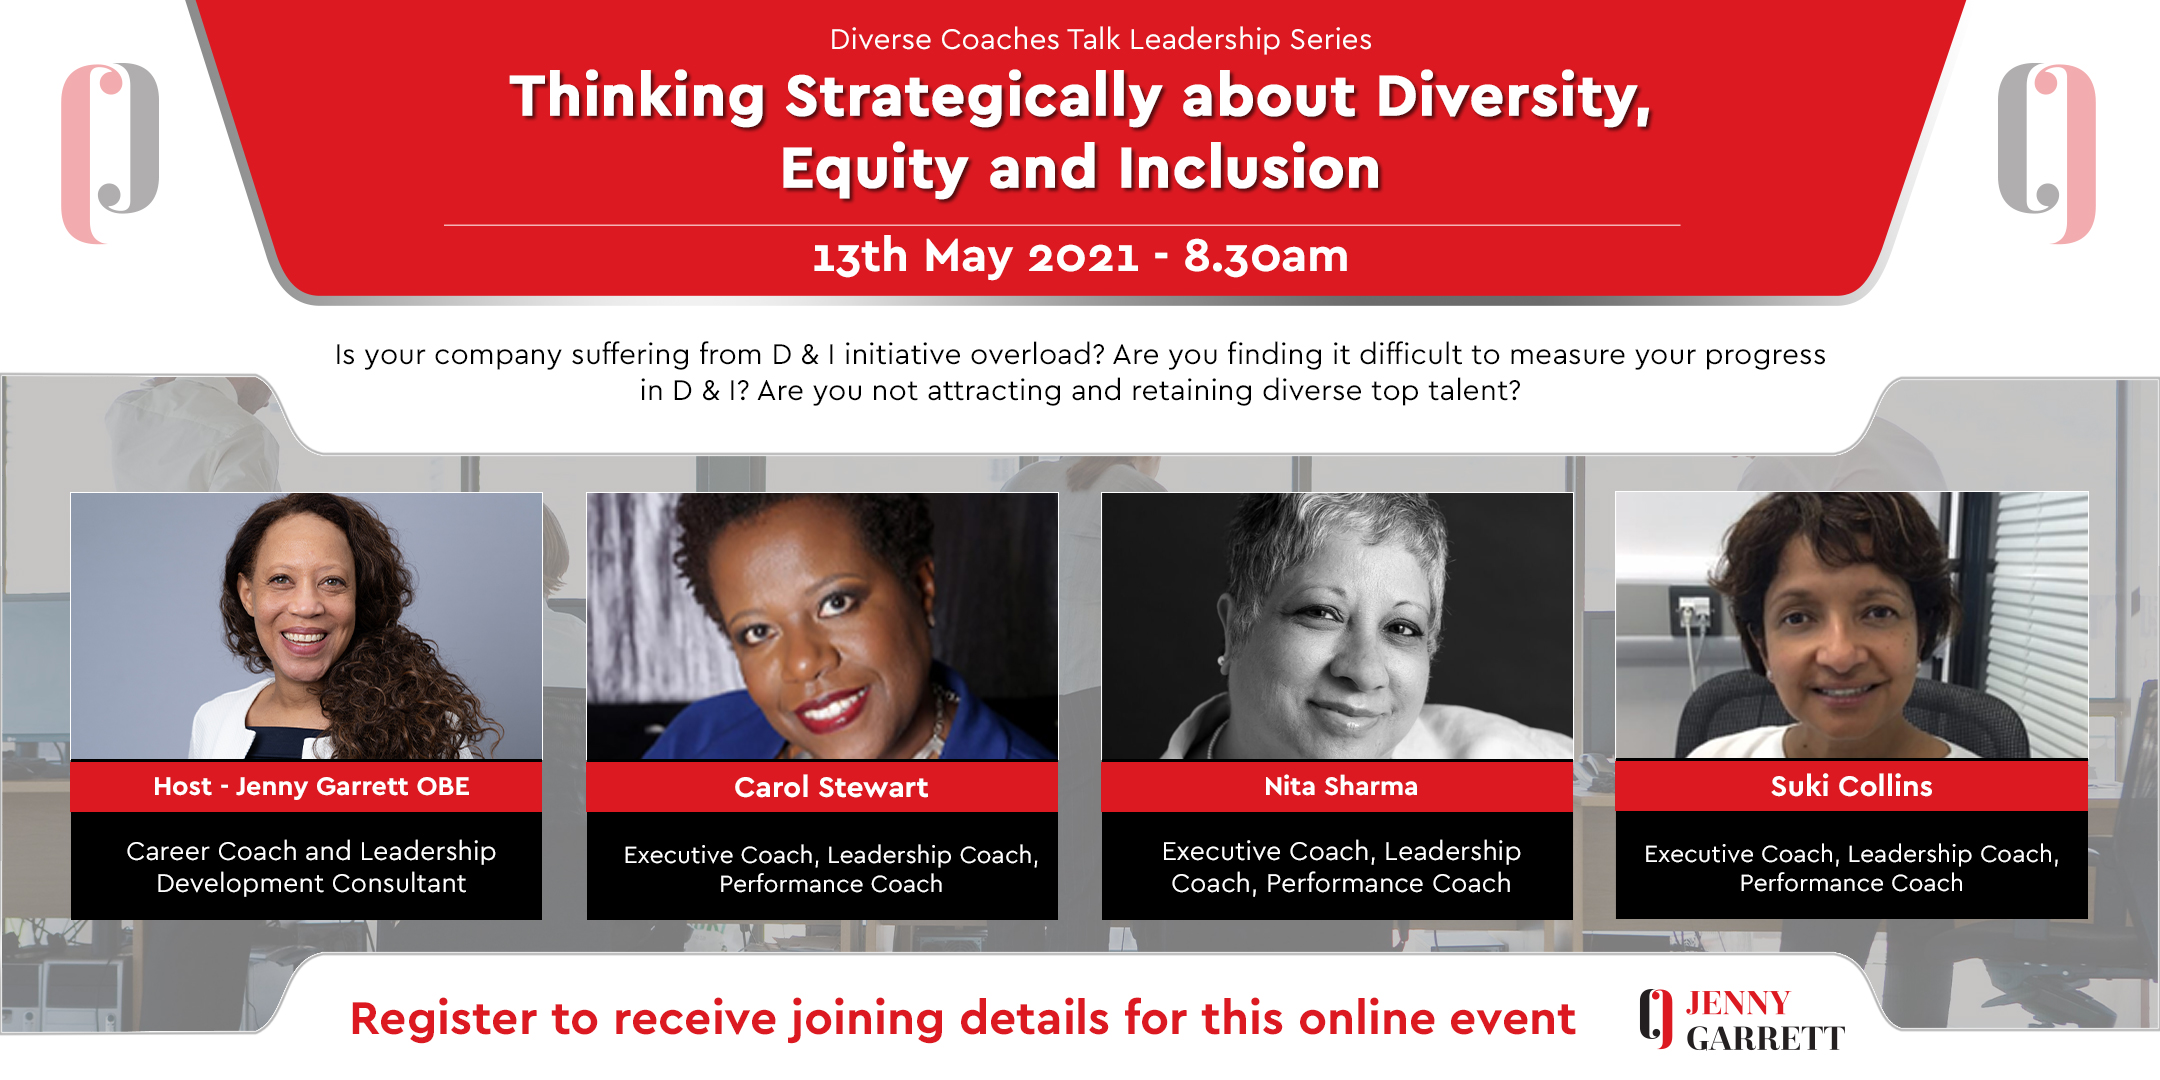 Thinking Strategically about Diversity, Equity and Inclusion